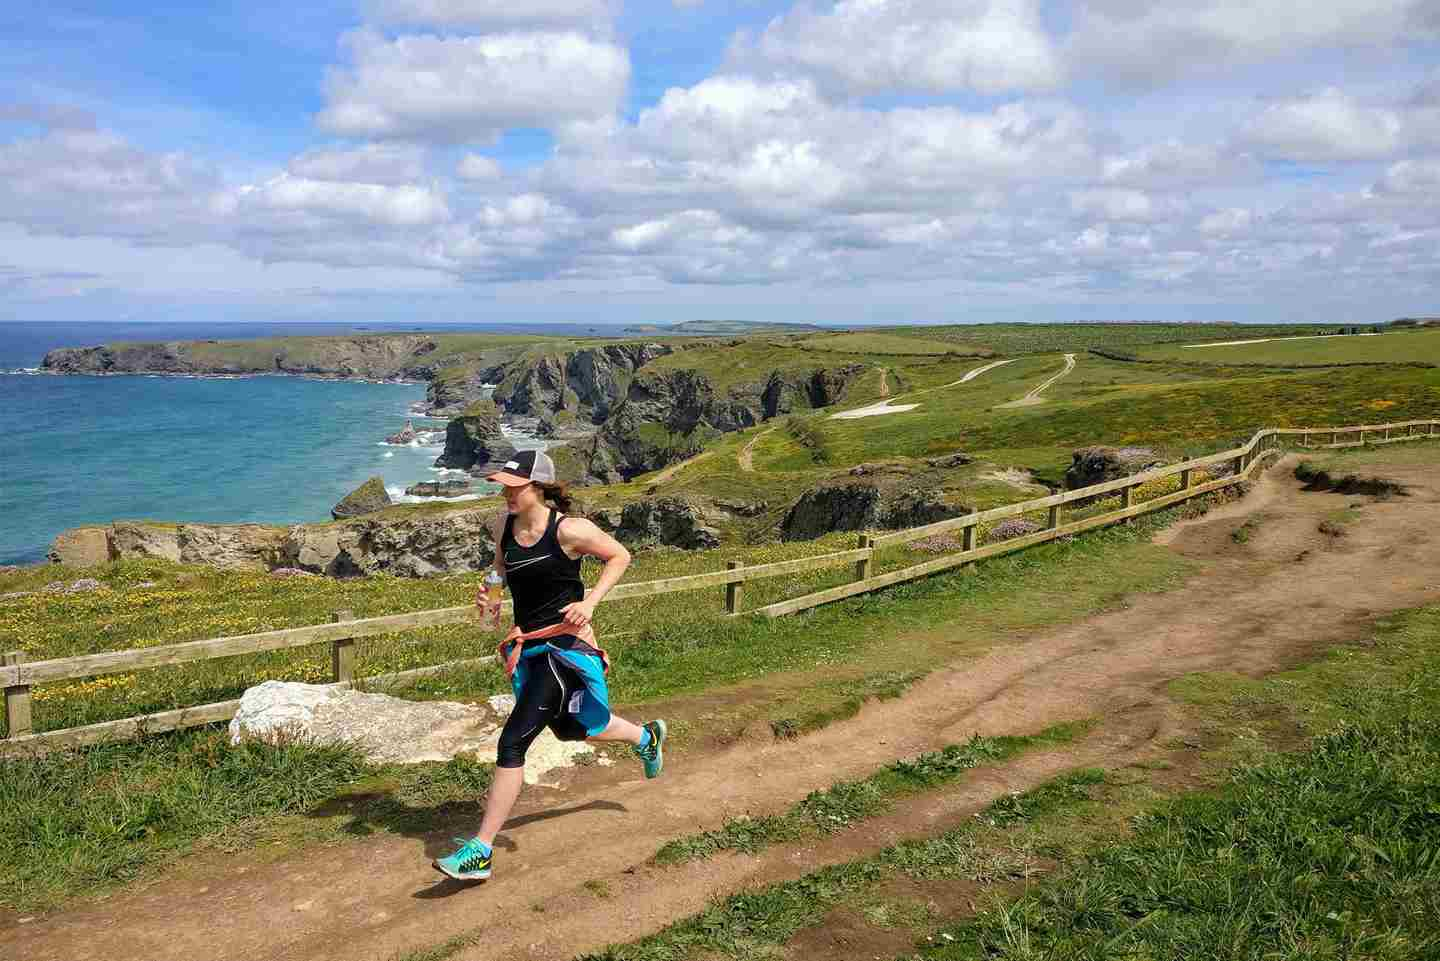 Coastal-fitness-running-at-Watergate-Bay.jpg